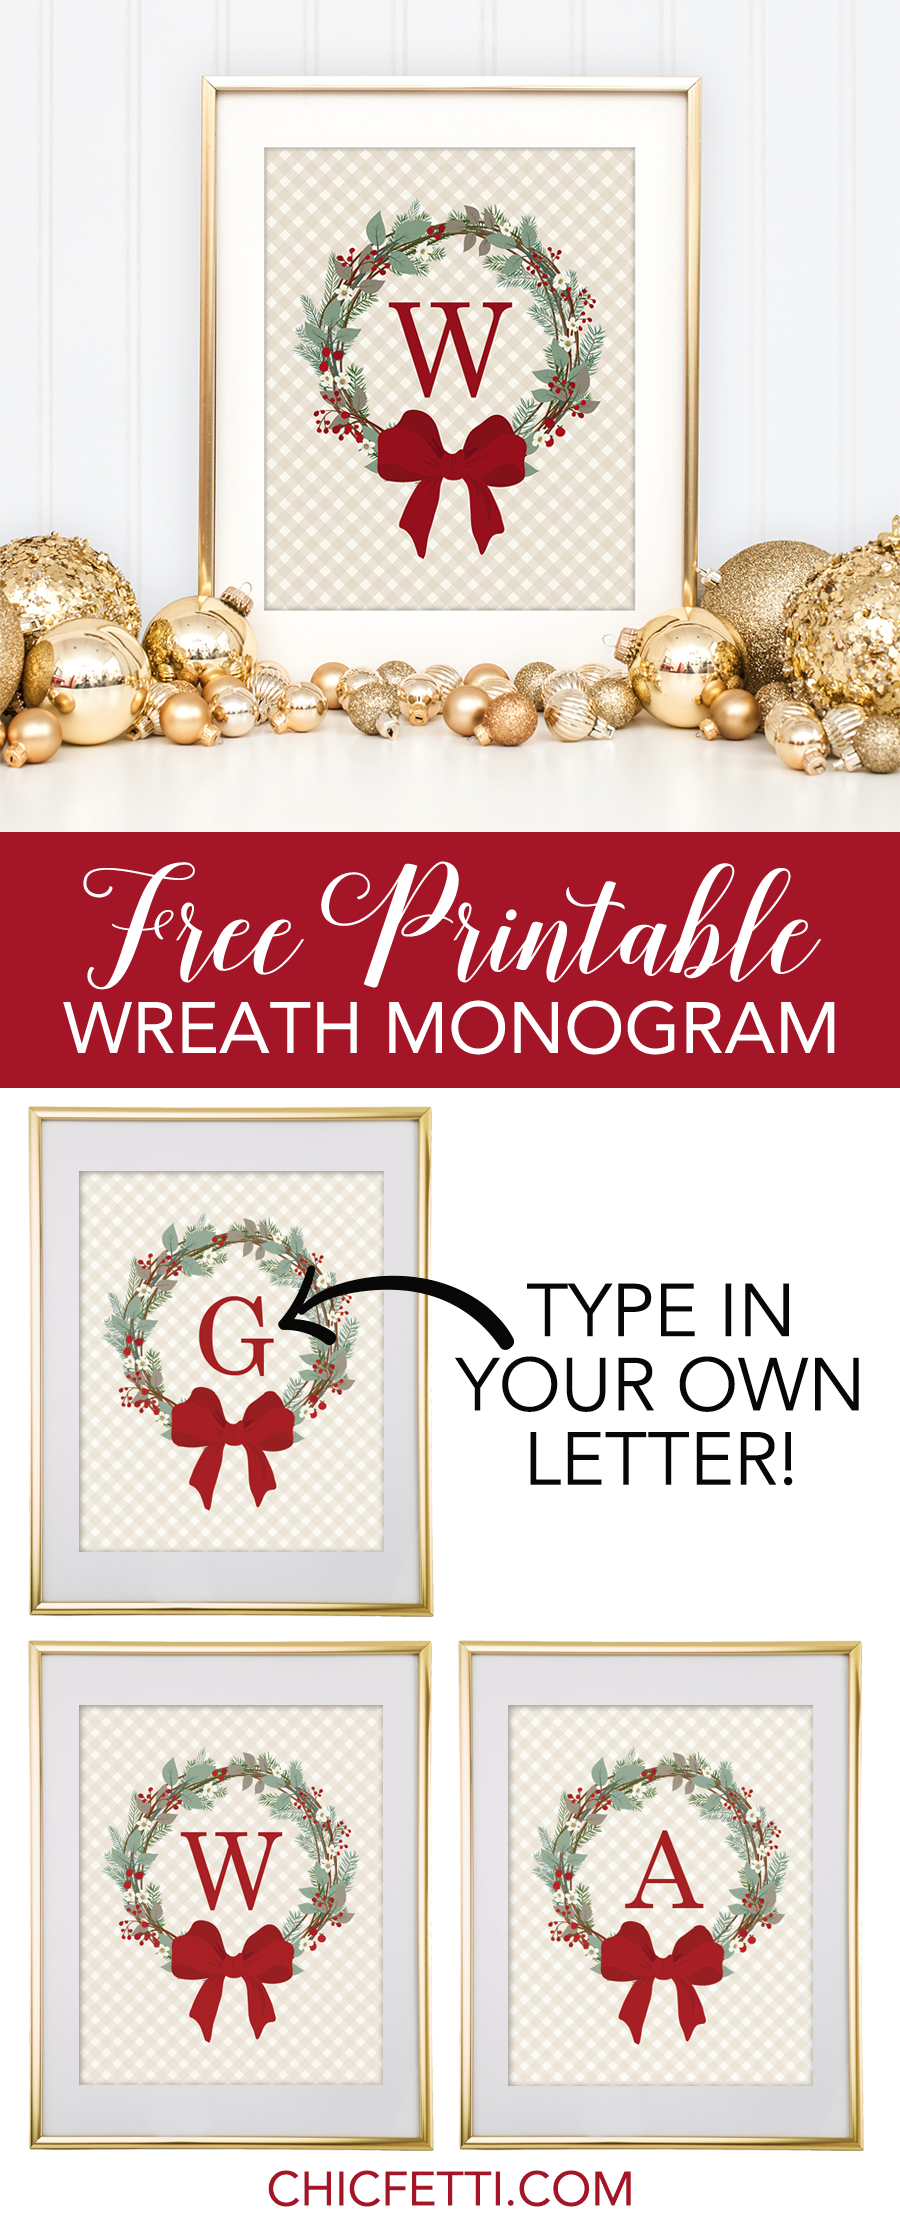 picture about Free Printable Monogram identified as absolutely free-printable-monogram-producer-xmas-weath - DIYbunker